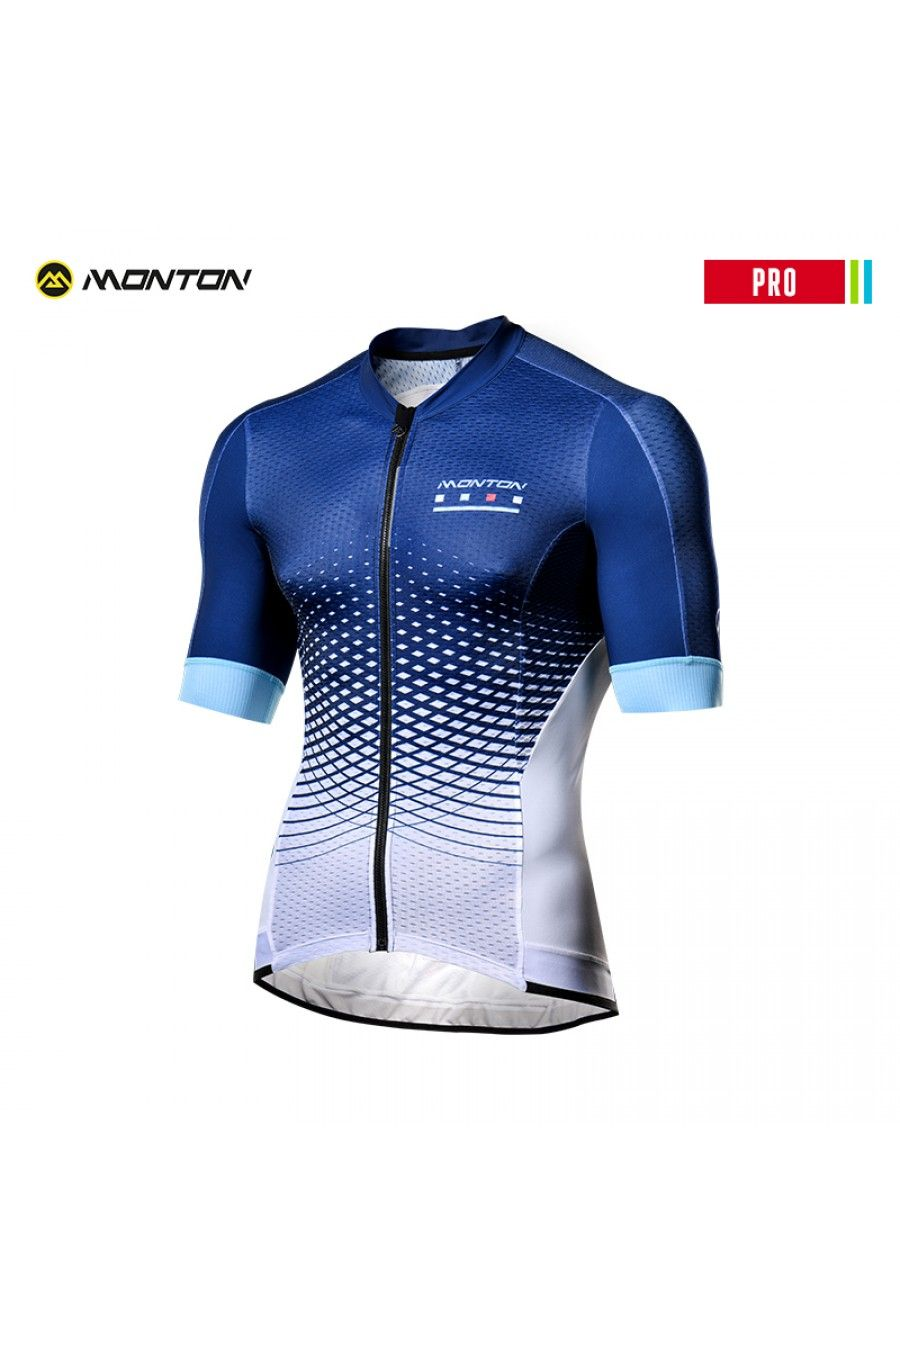 68c6aa121 Blue and white cycling jersey